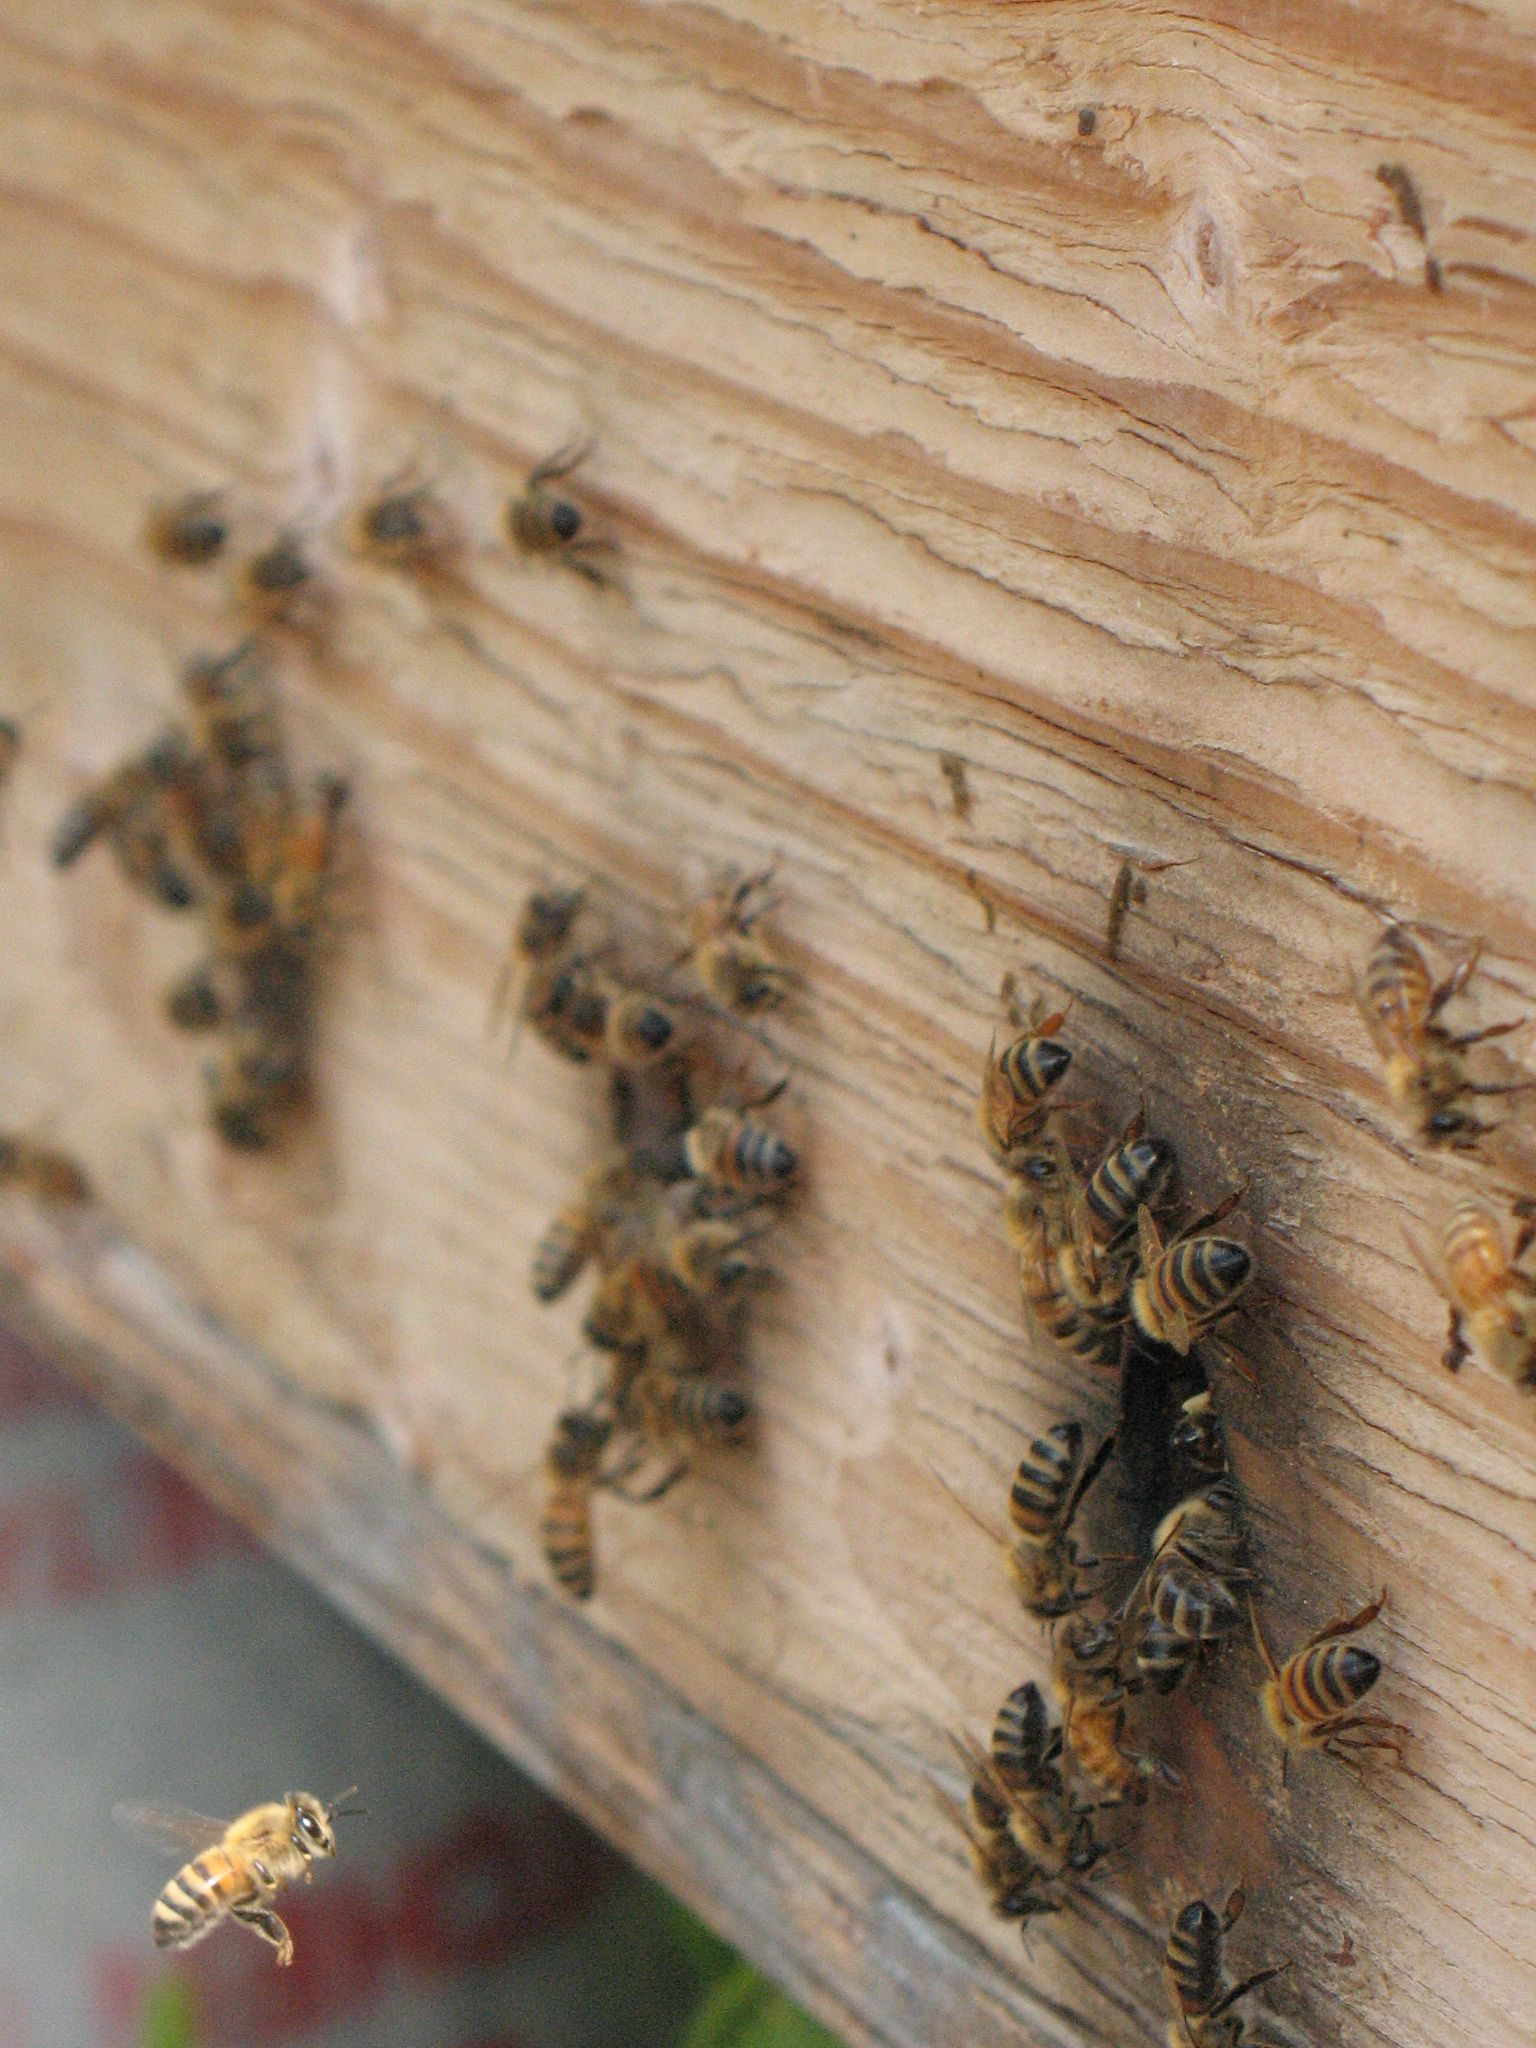 a report on a bees observation experiment Use the following template if a study report (ie toxicity test) was submitted  [ briefly describe the experimental design]  bees are observed closely for 4  hours after exposure, and then for mortality and signs of intoxication at 24 and 48  hours.